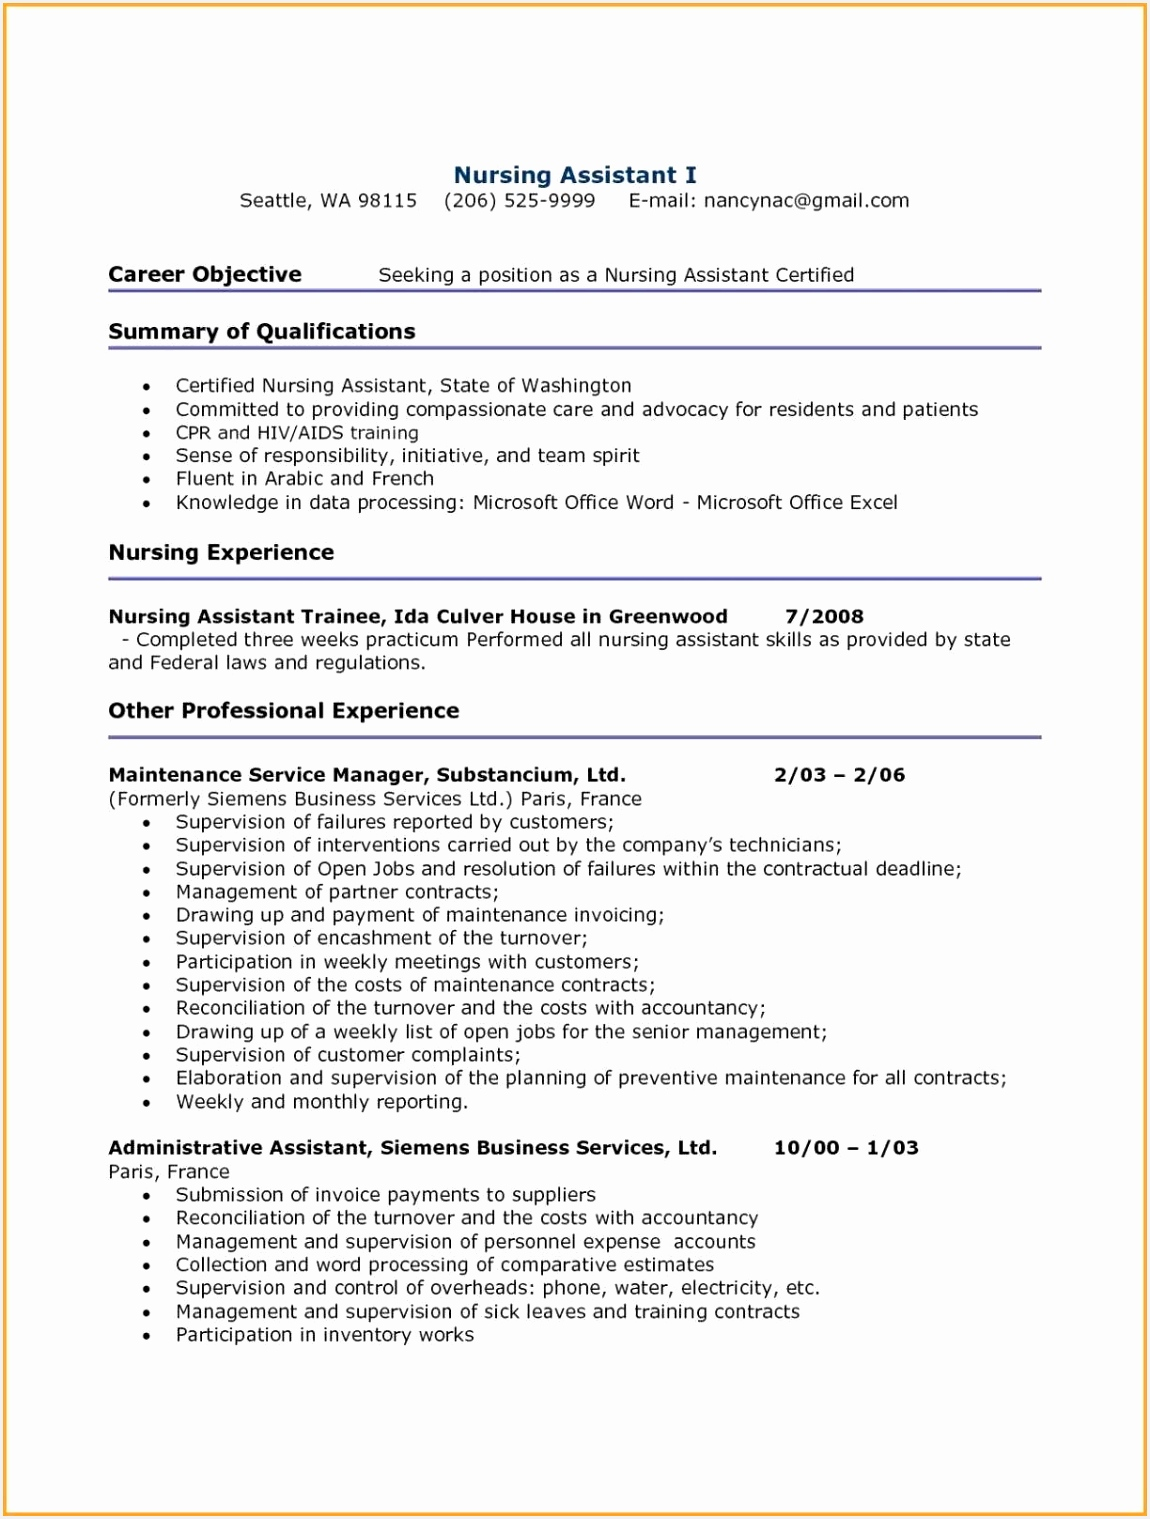 Microsoft Trainer Sample Resume Rduqf Awesome Cover Letter Email format Lovely Email Cover Letters New Resume15191150